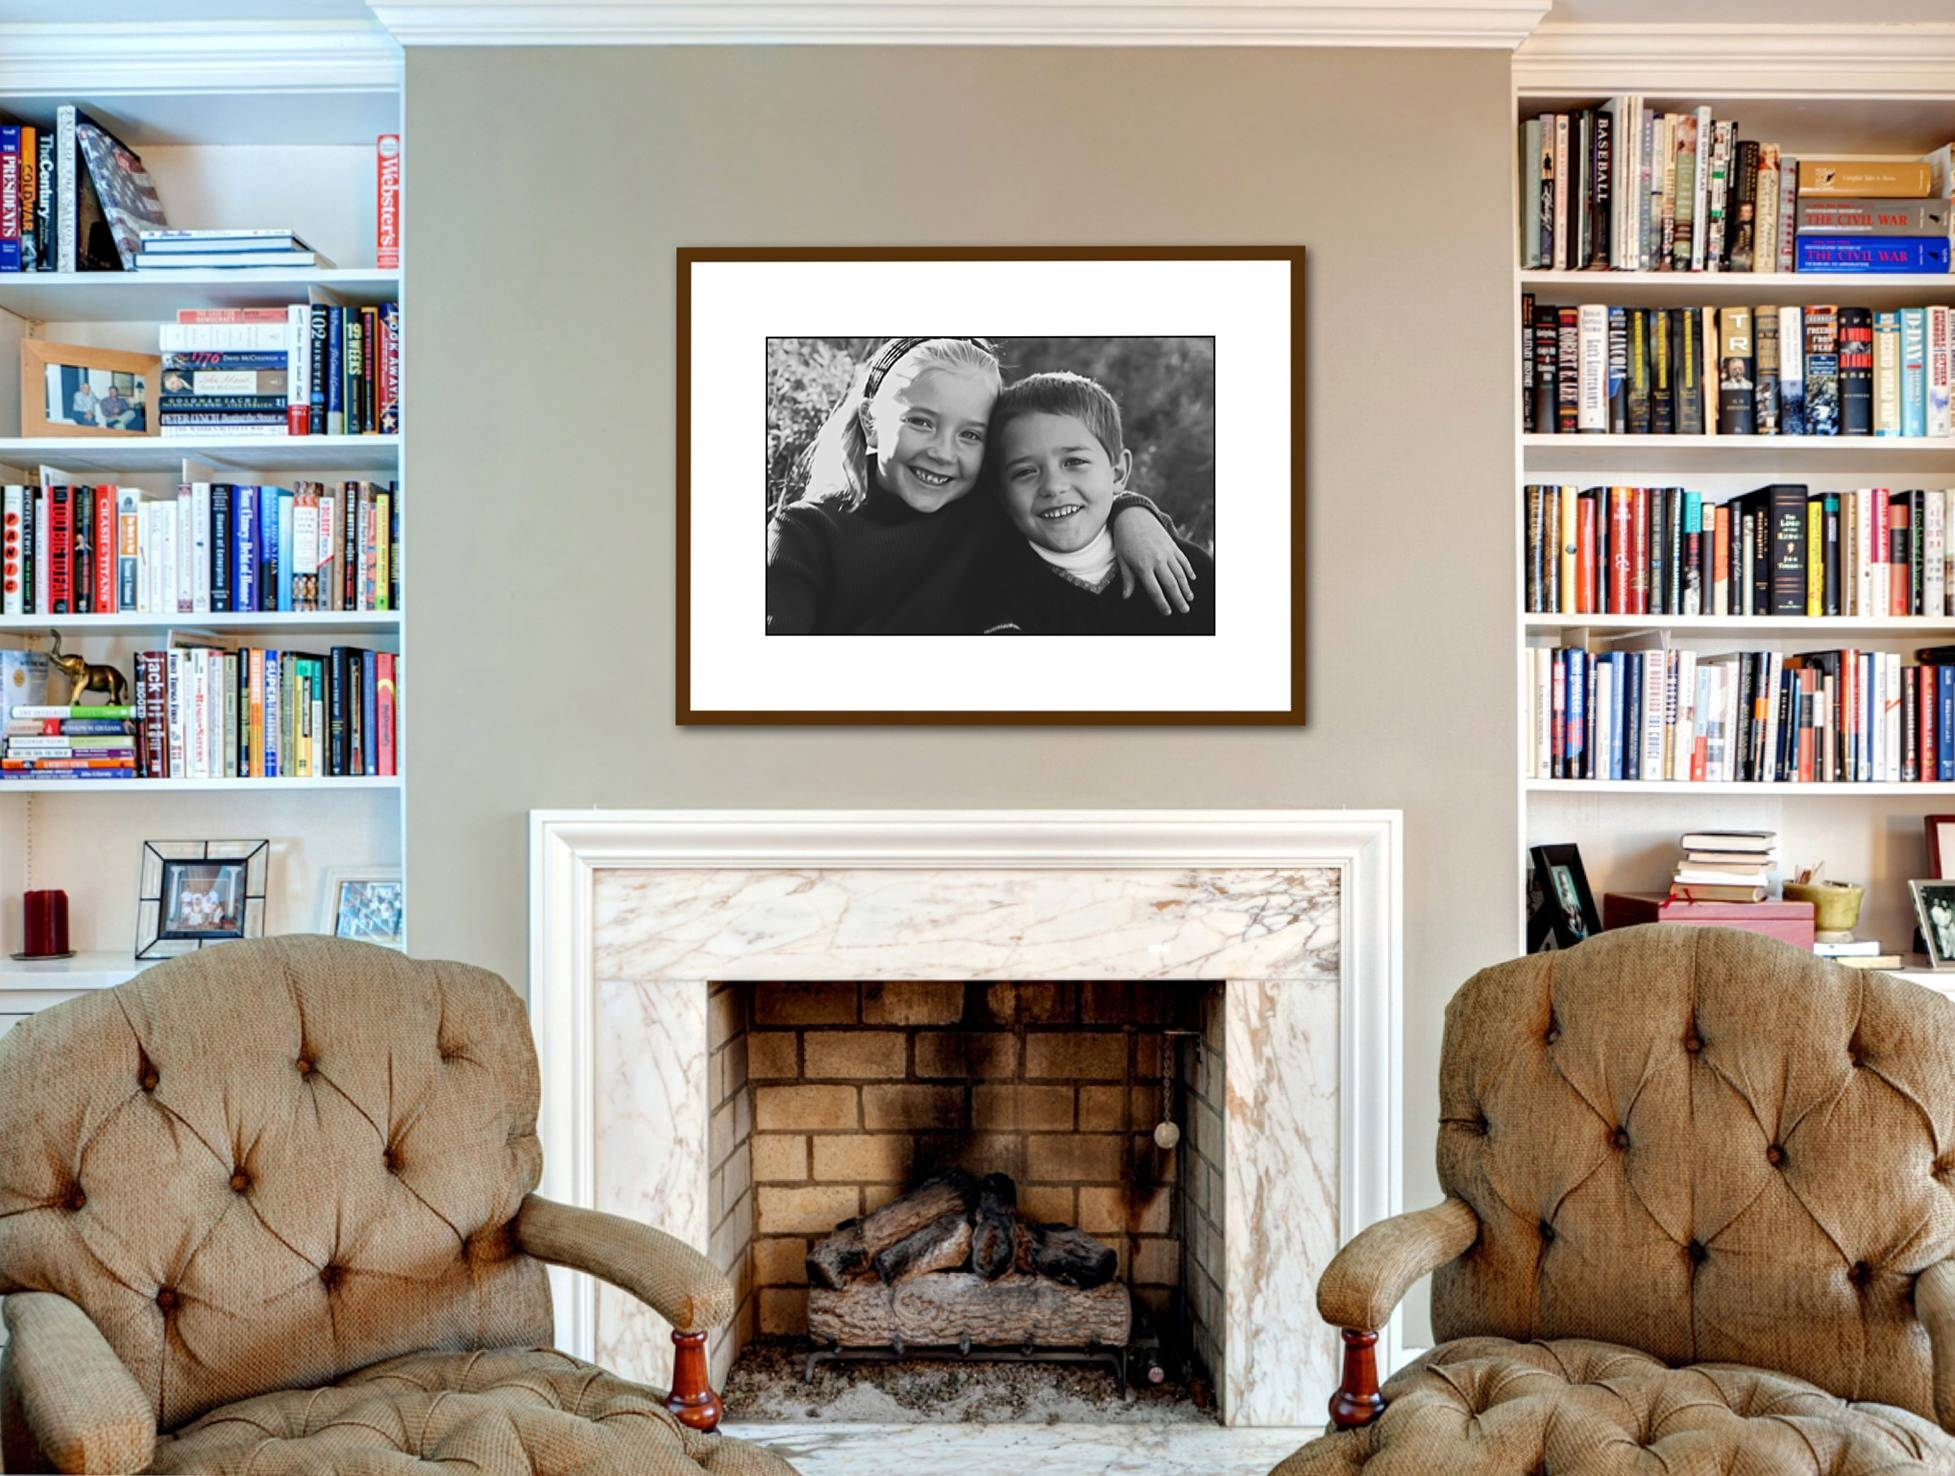 Black And White Photography Wall Art Ideas – In Recent Photography Wall Art (View 6 of 25)